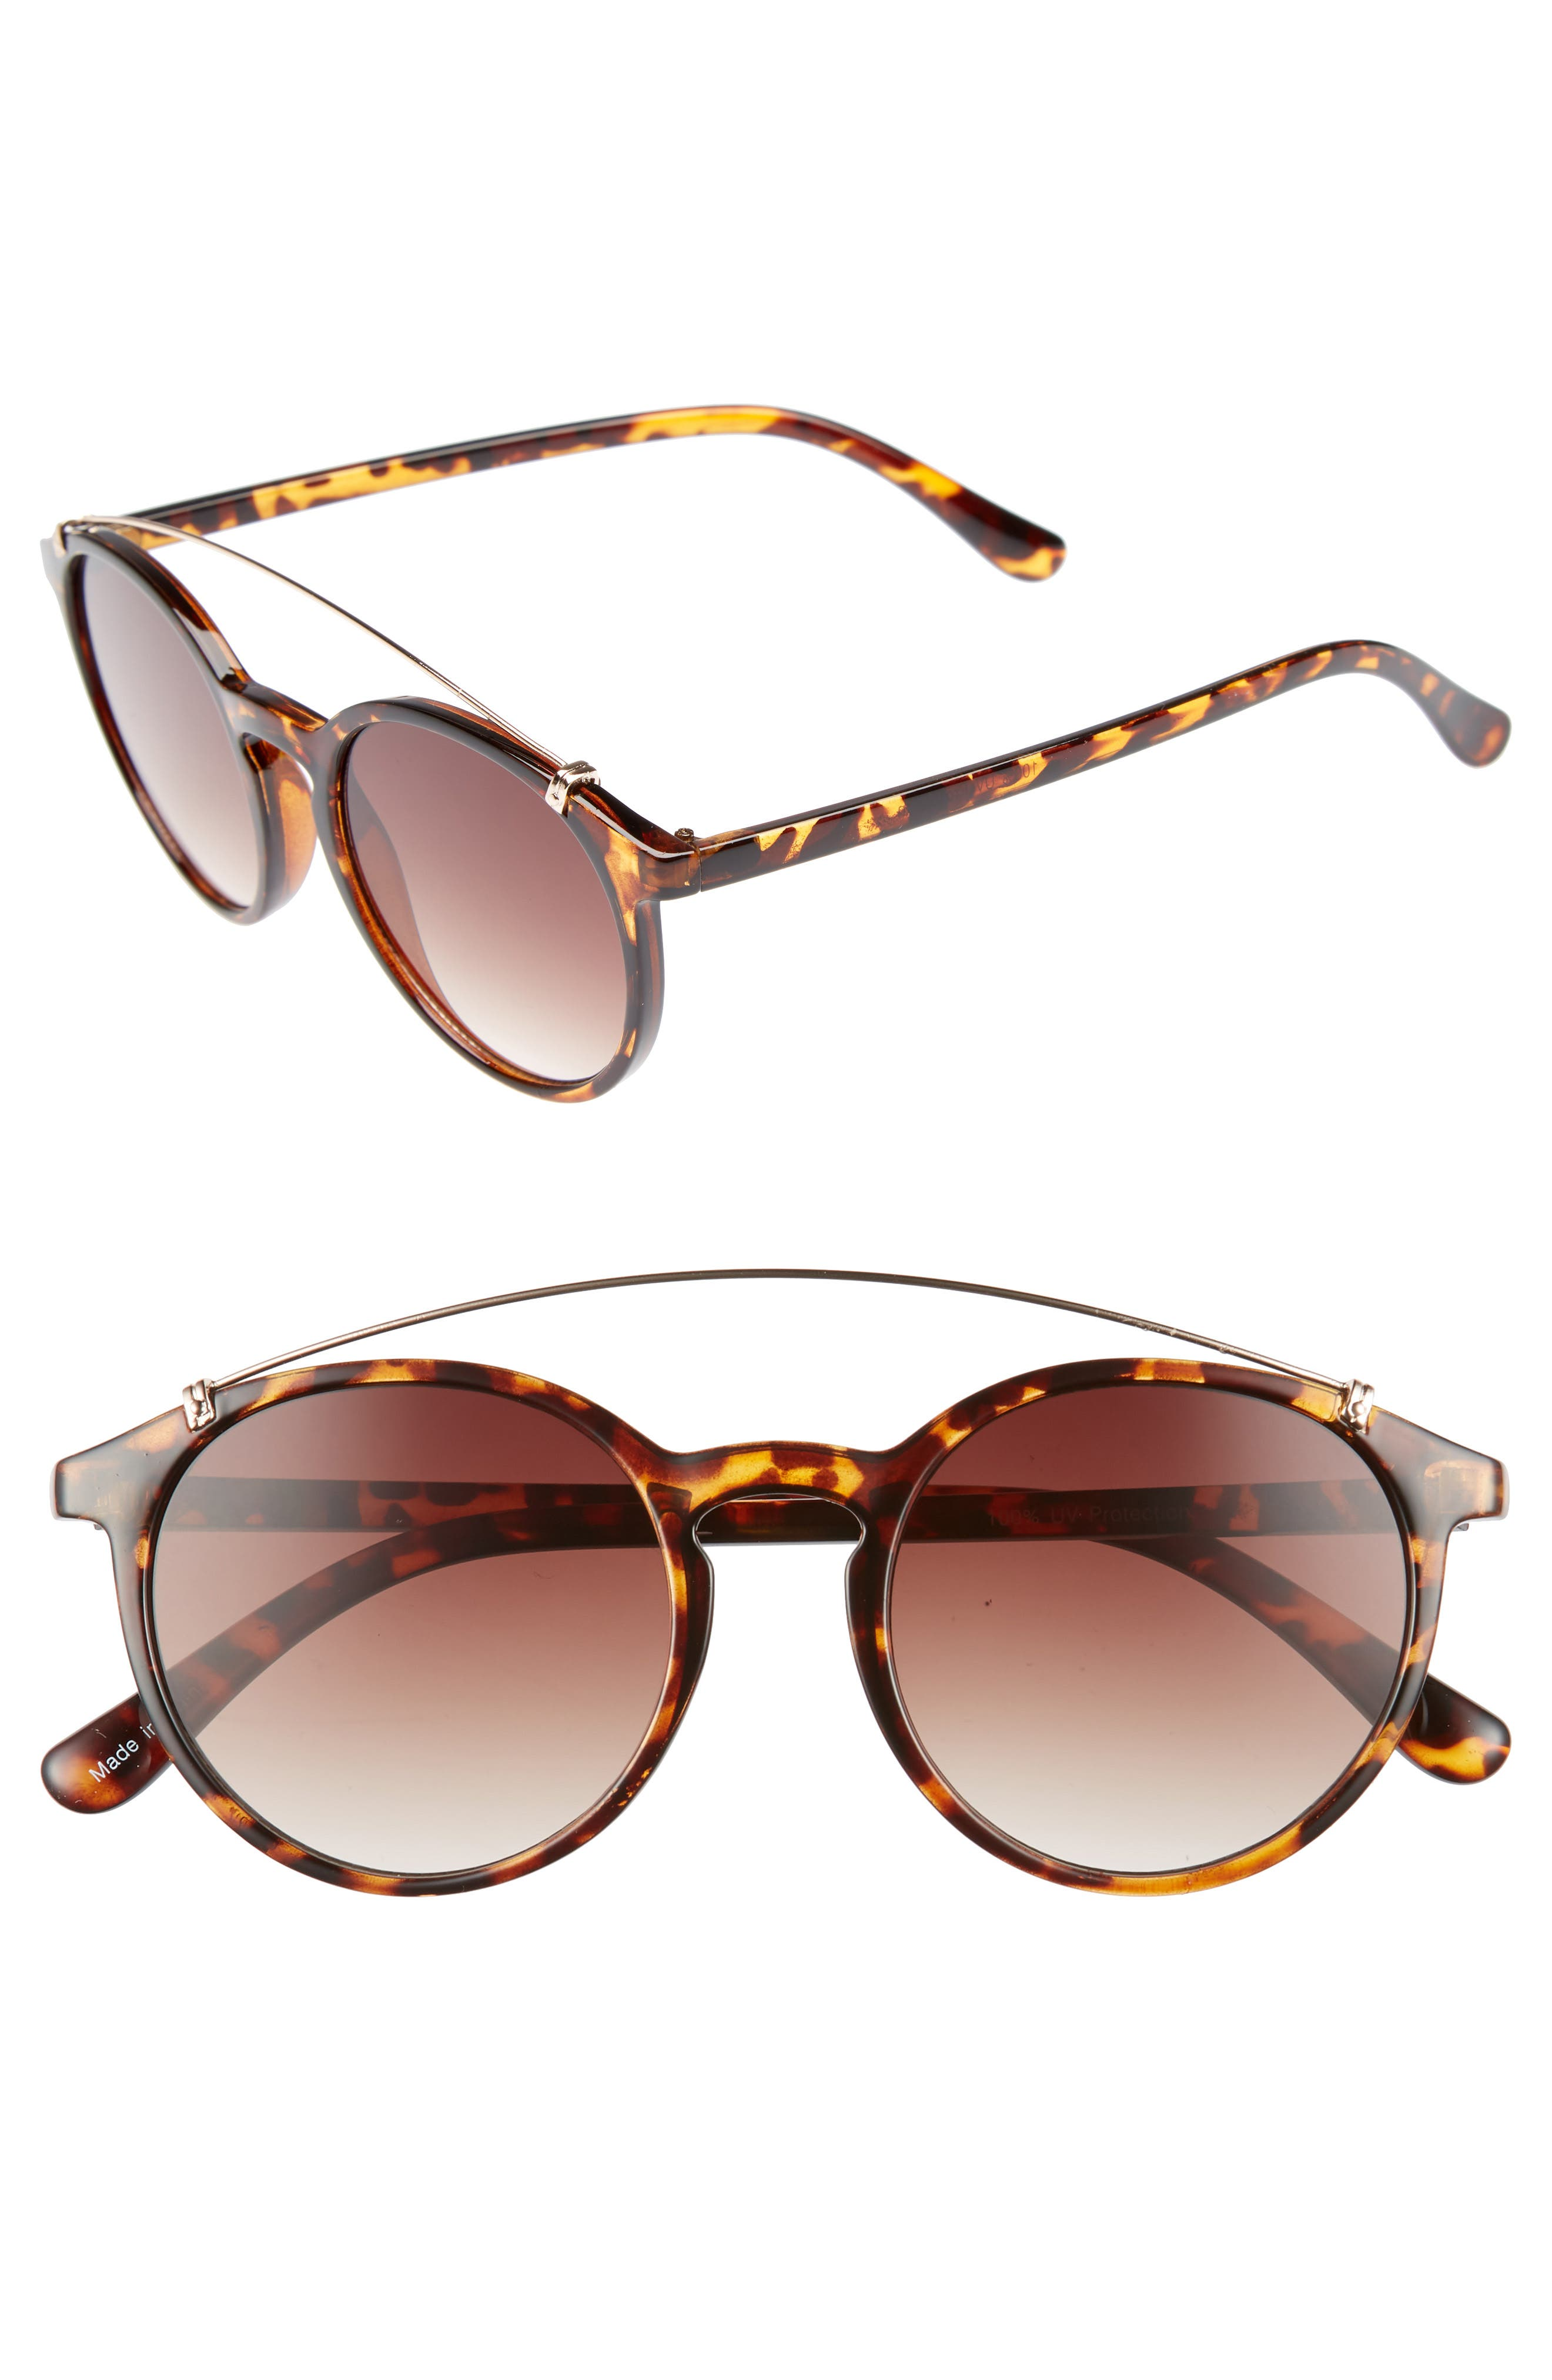 Round Aviator Sunglasses,                             Main thumbnail 1, color,                             Tort/ Brown